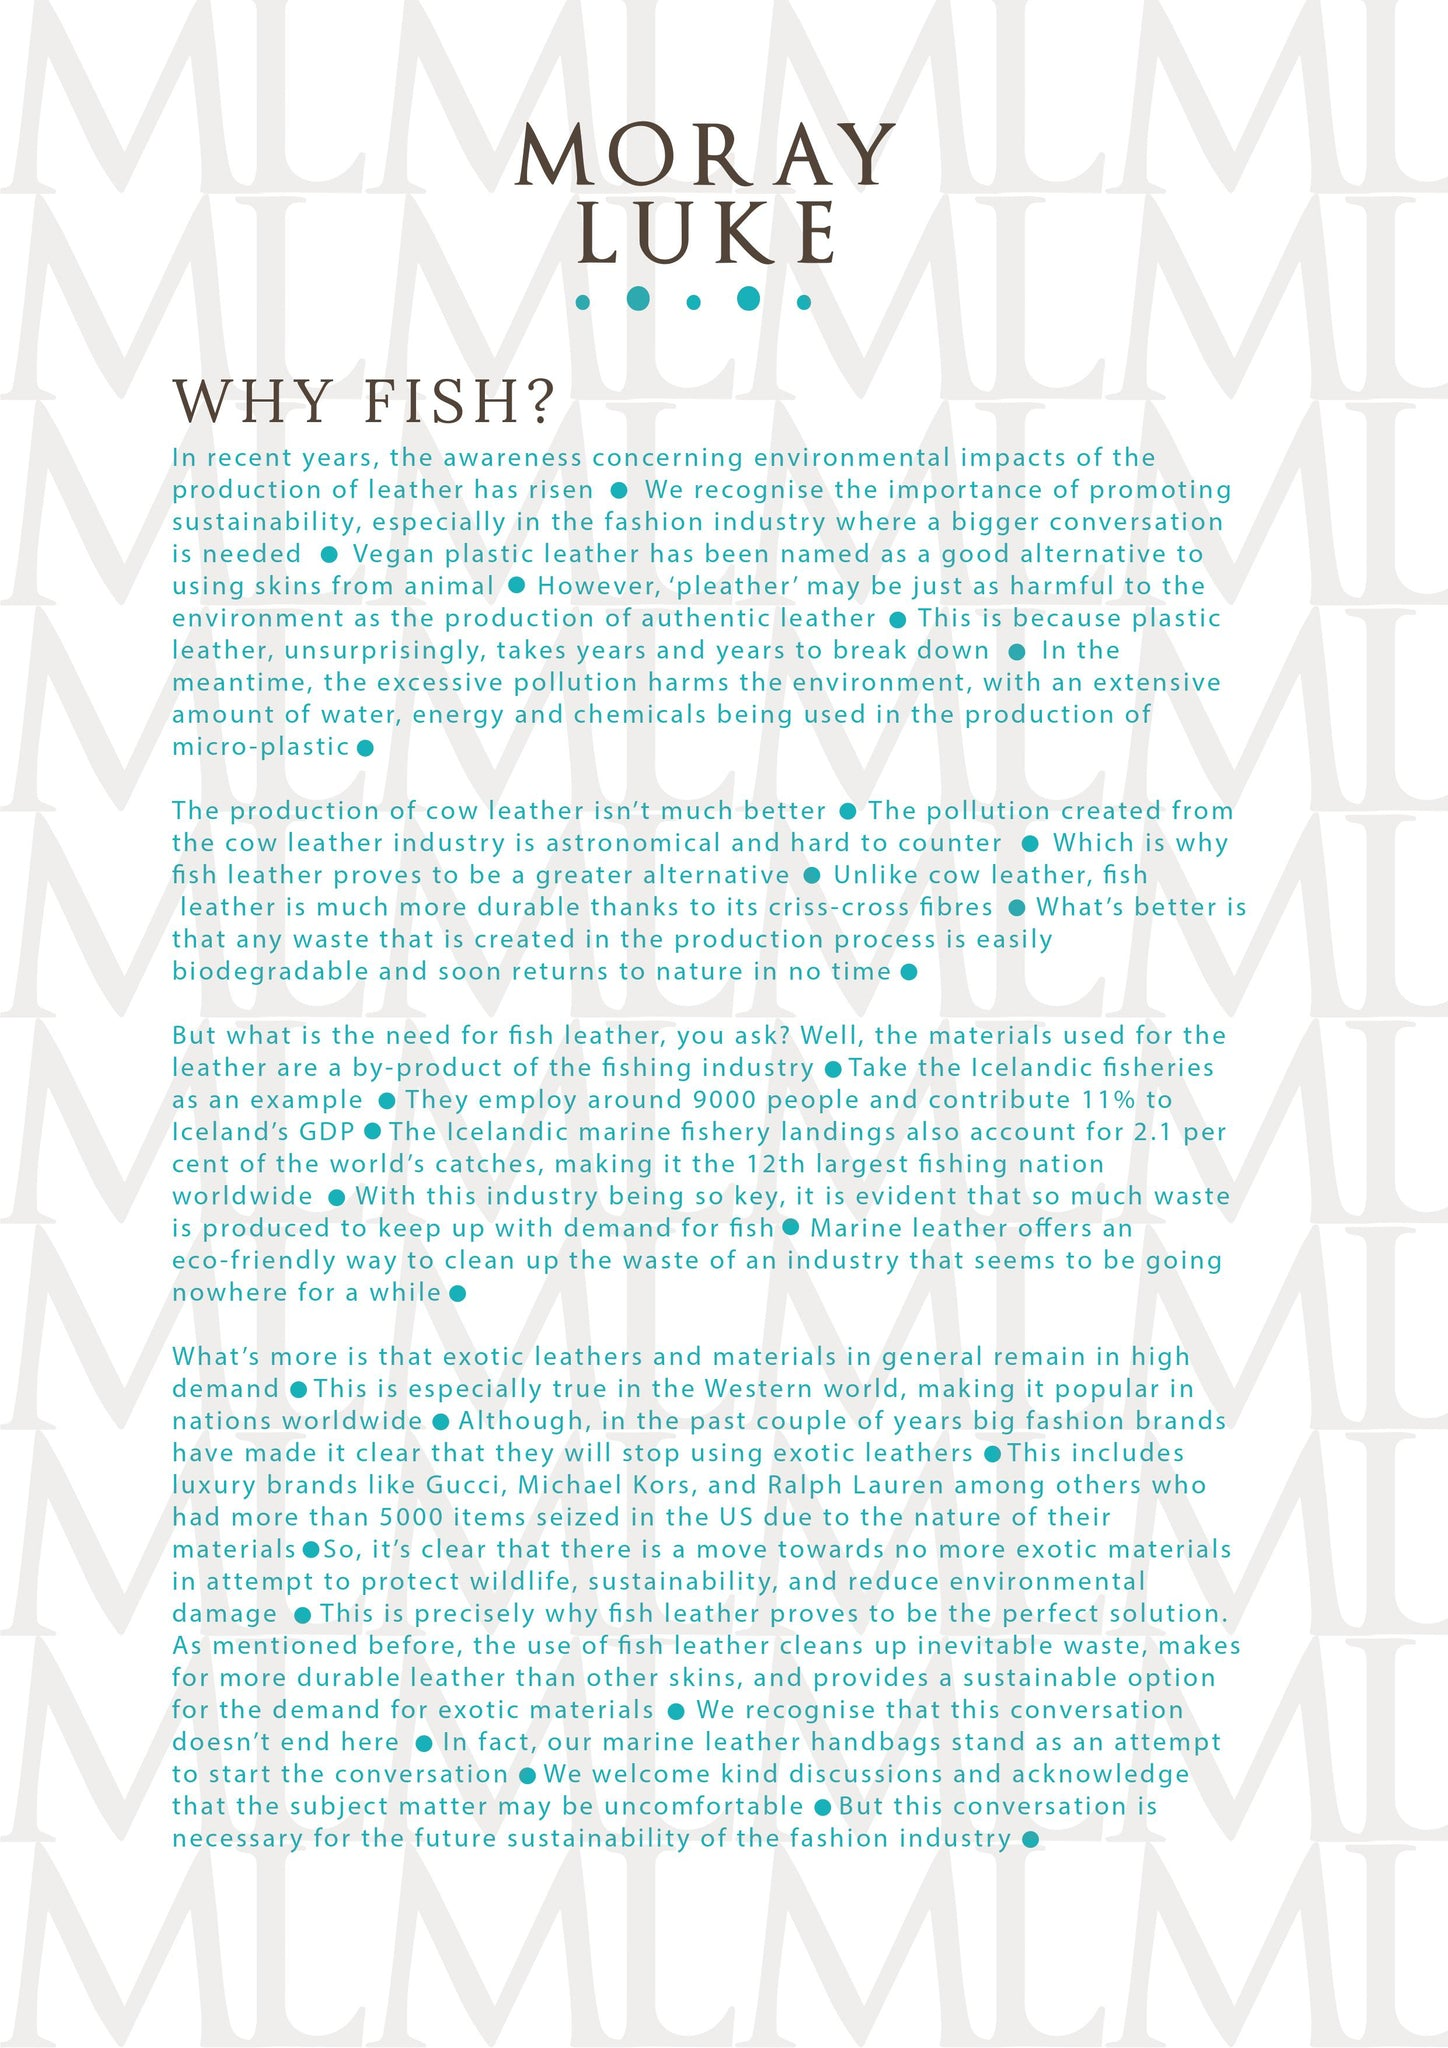 WHY FISH LEATHER